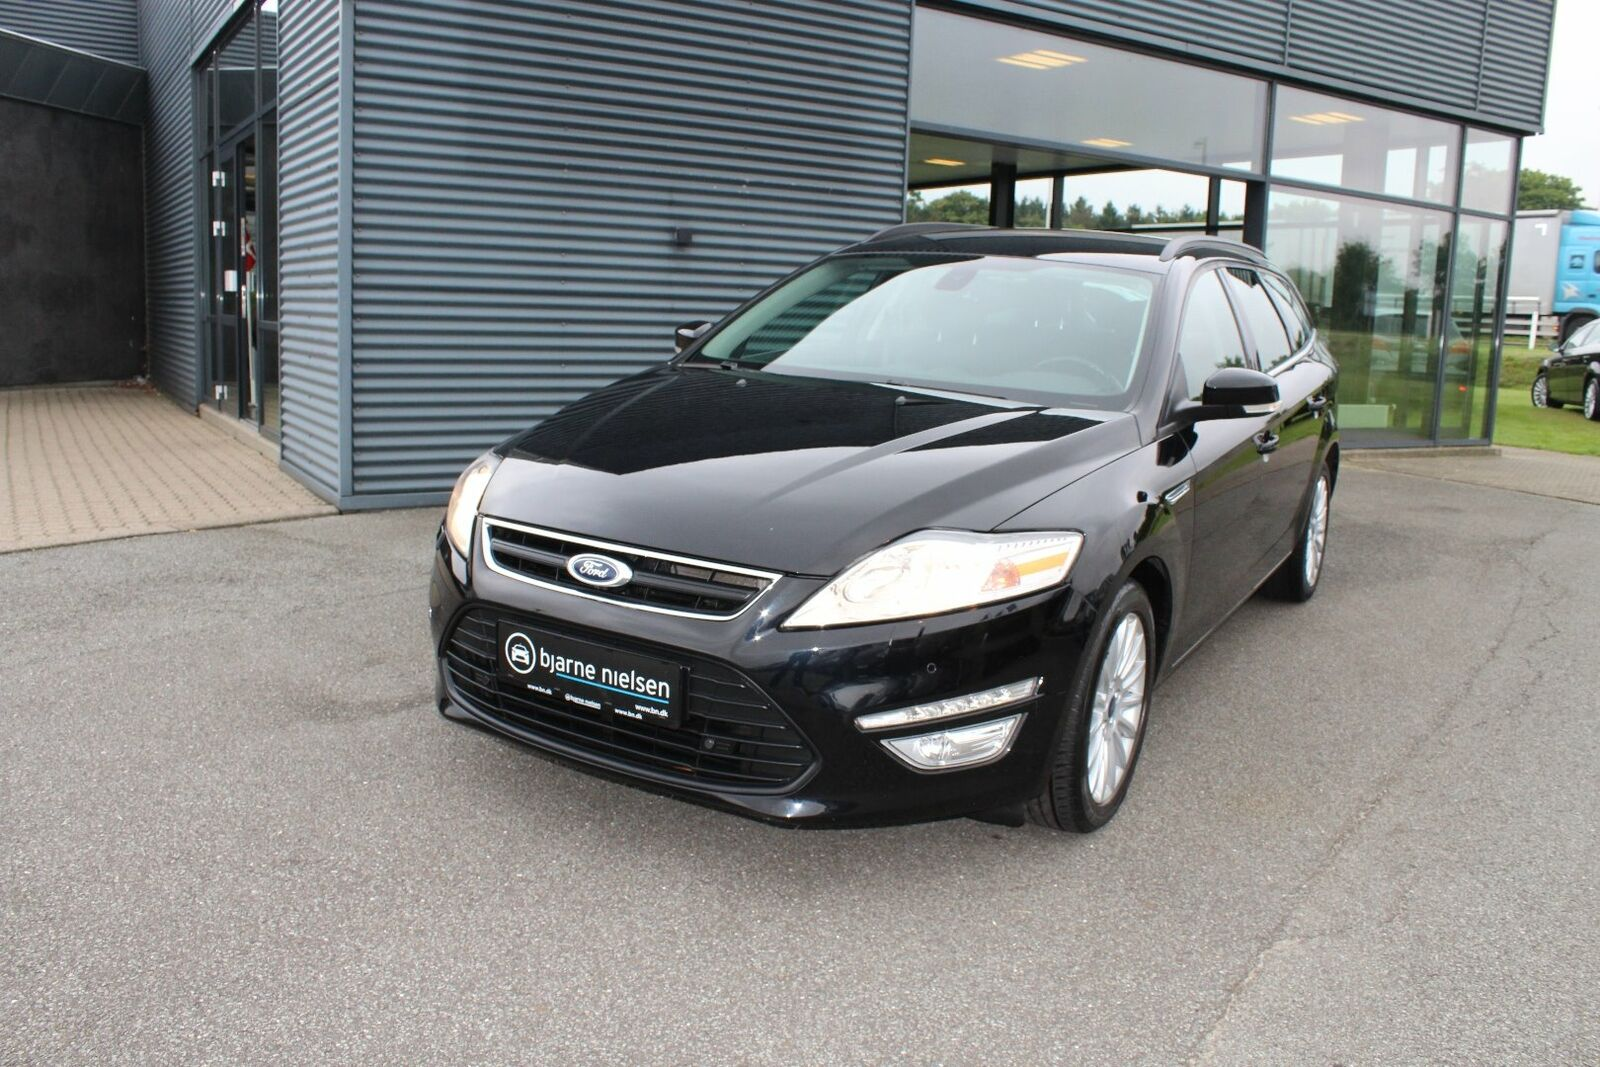 Ford Mondeo 2,0 TDCi 140 Collection stc. aut - billede 2